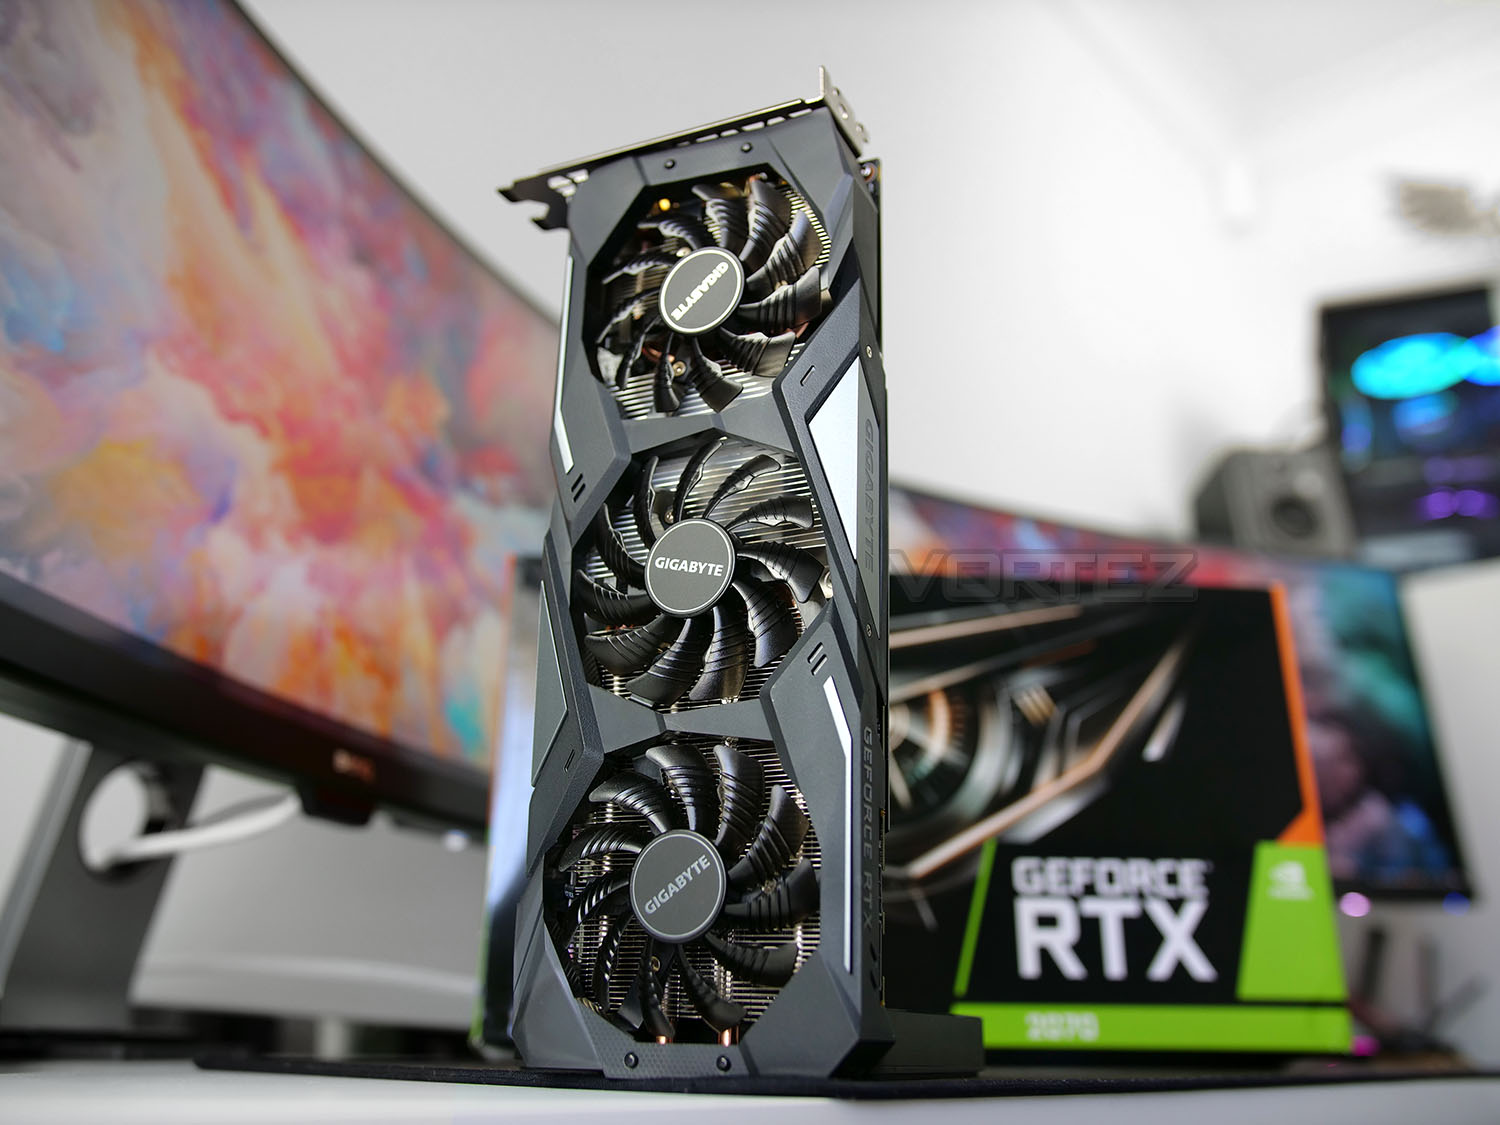 GIGABYTE RTX 2070 GAMING OC Review - Introduction